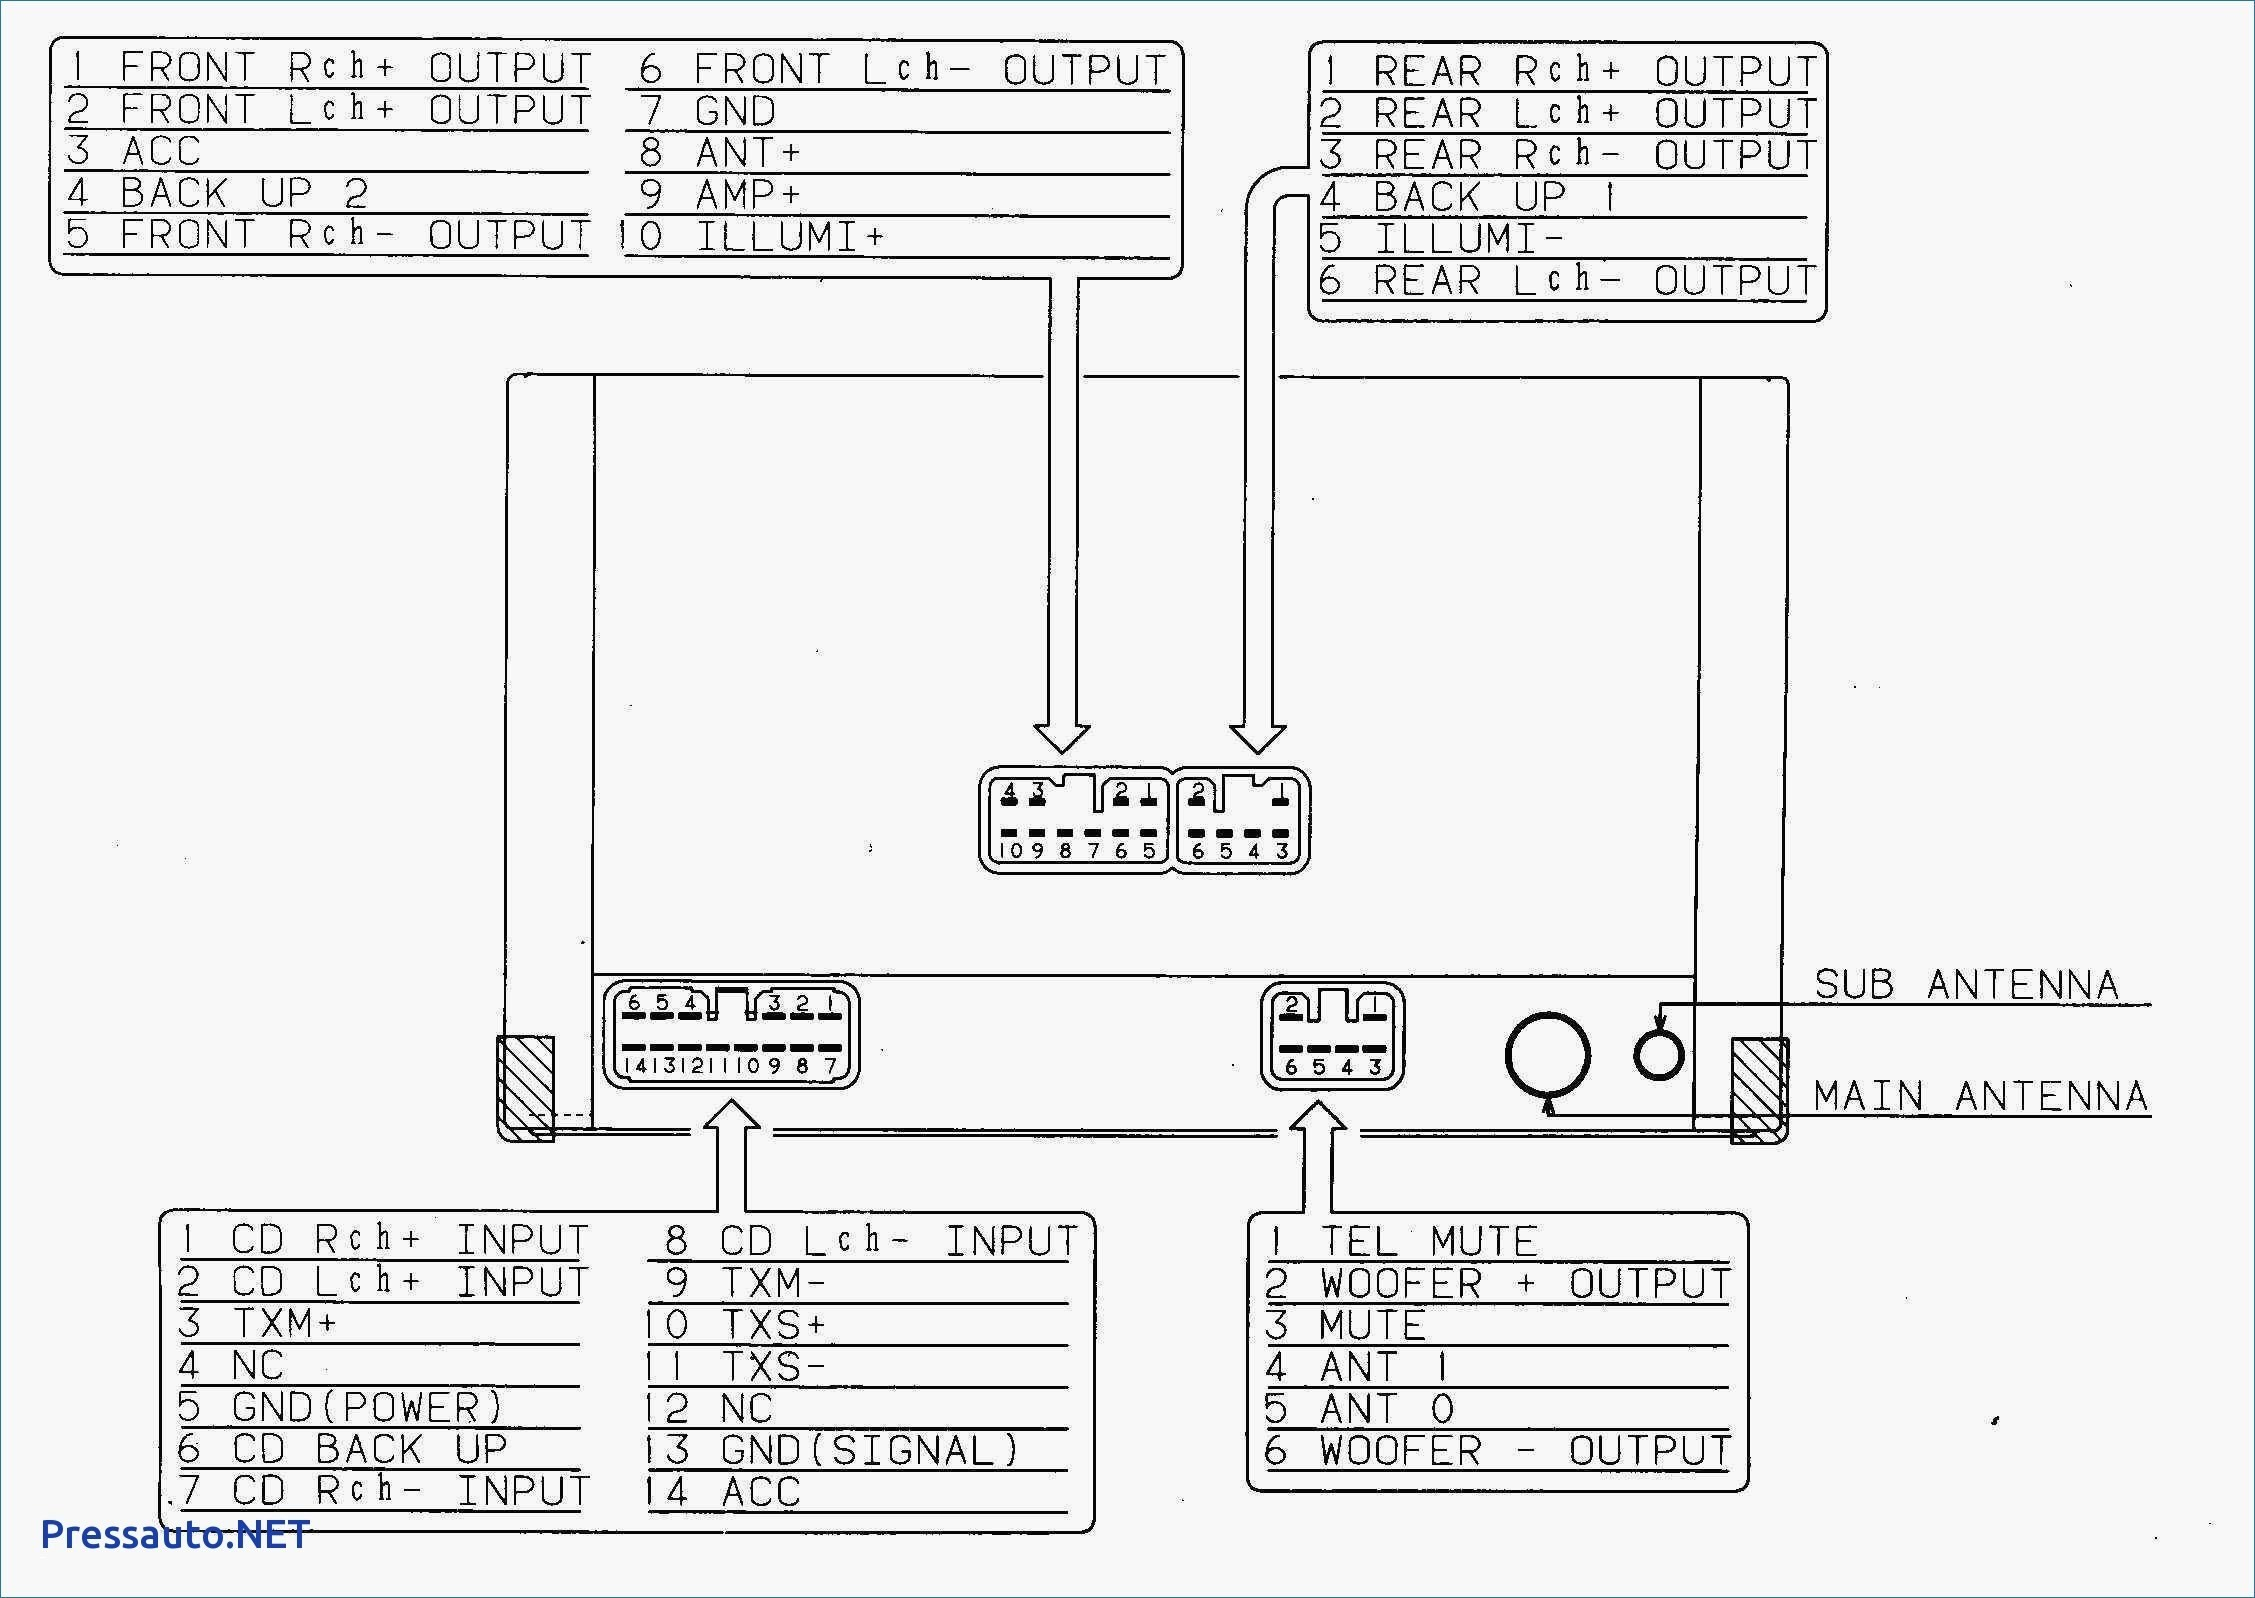 wiring diagrams for car audio holiday rambler diagram pioneer stereo free download